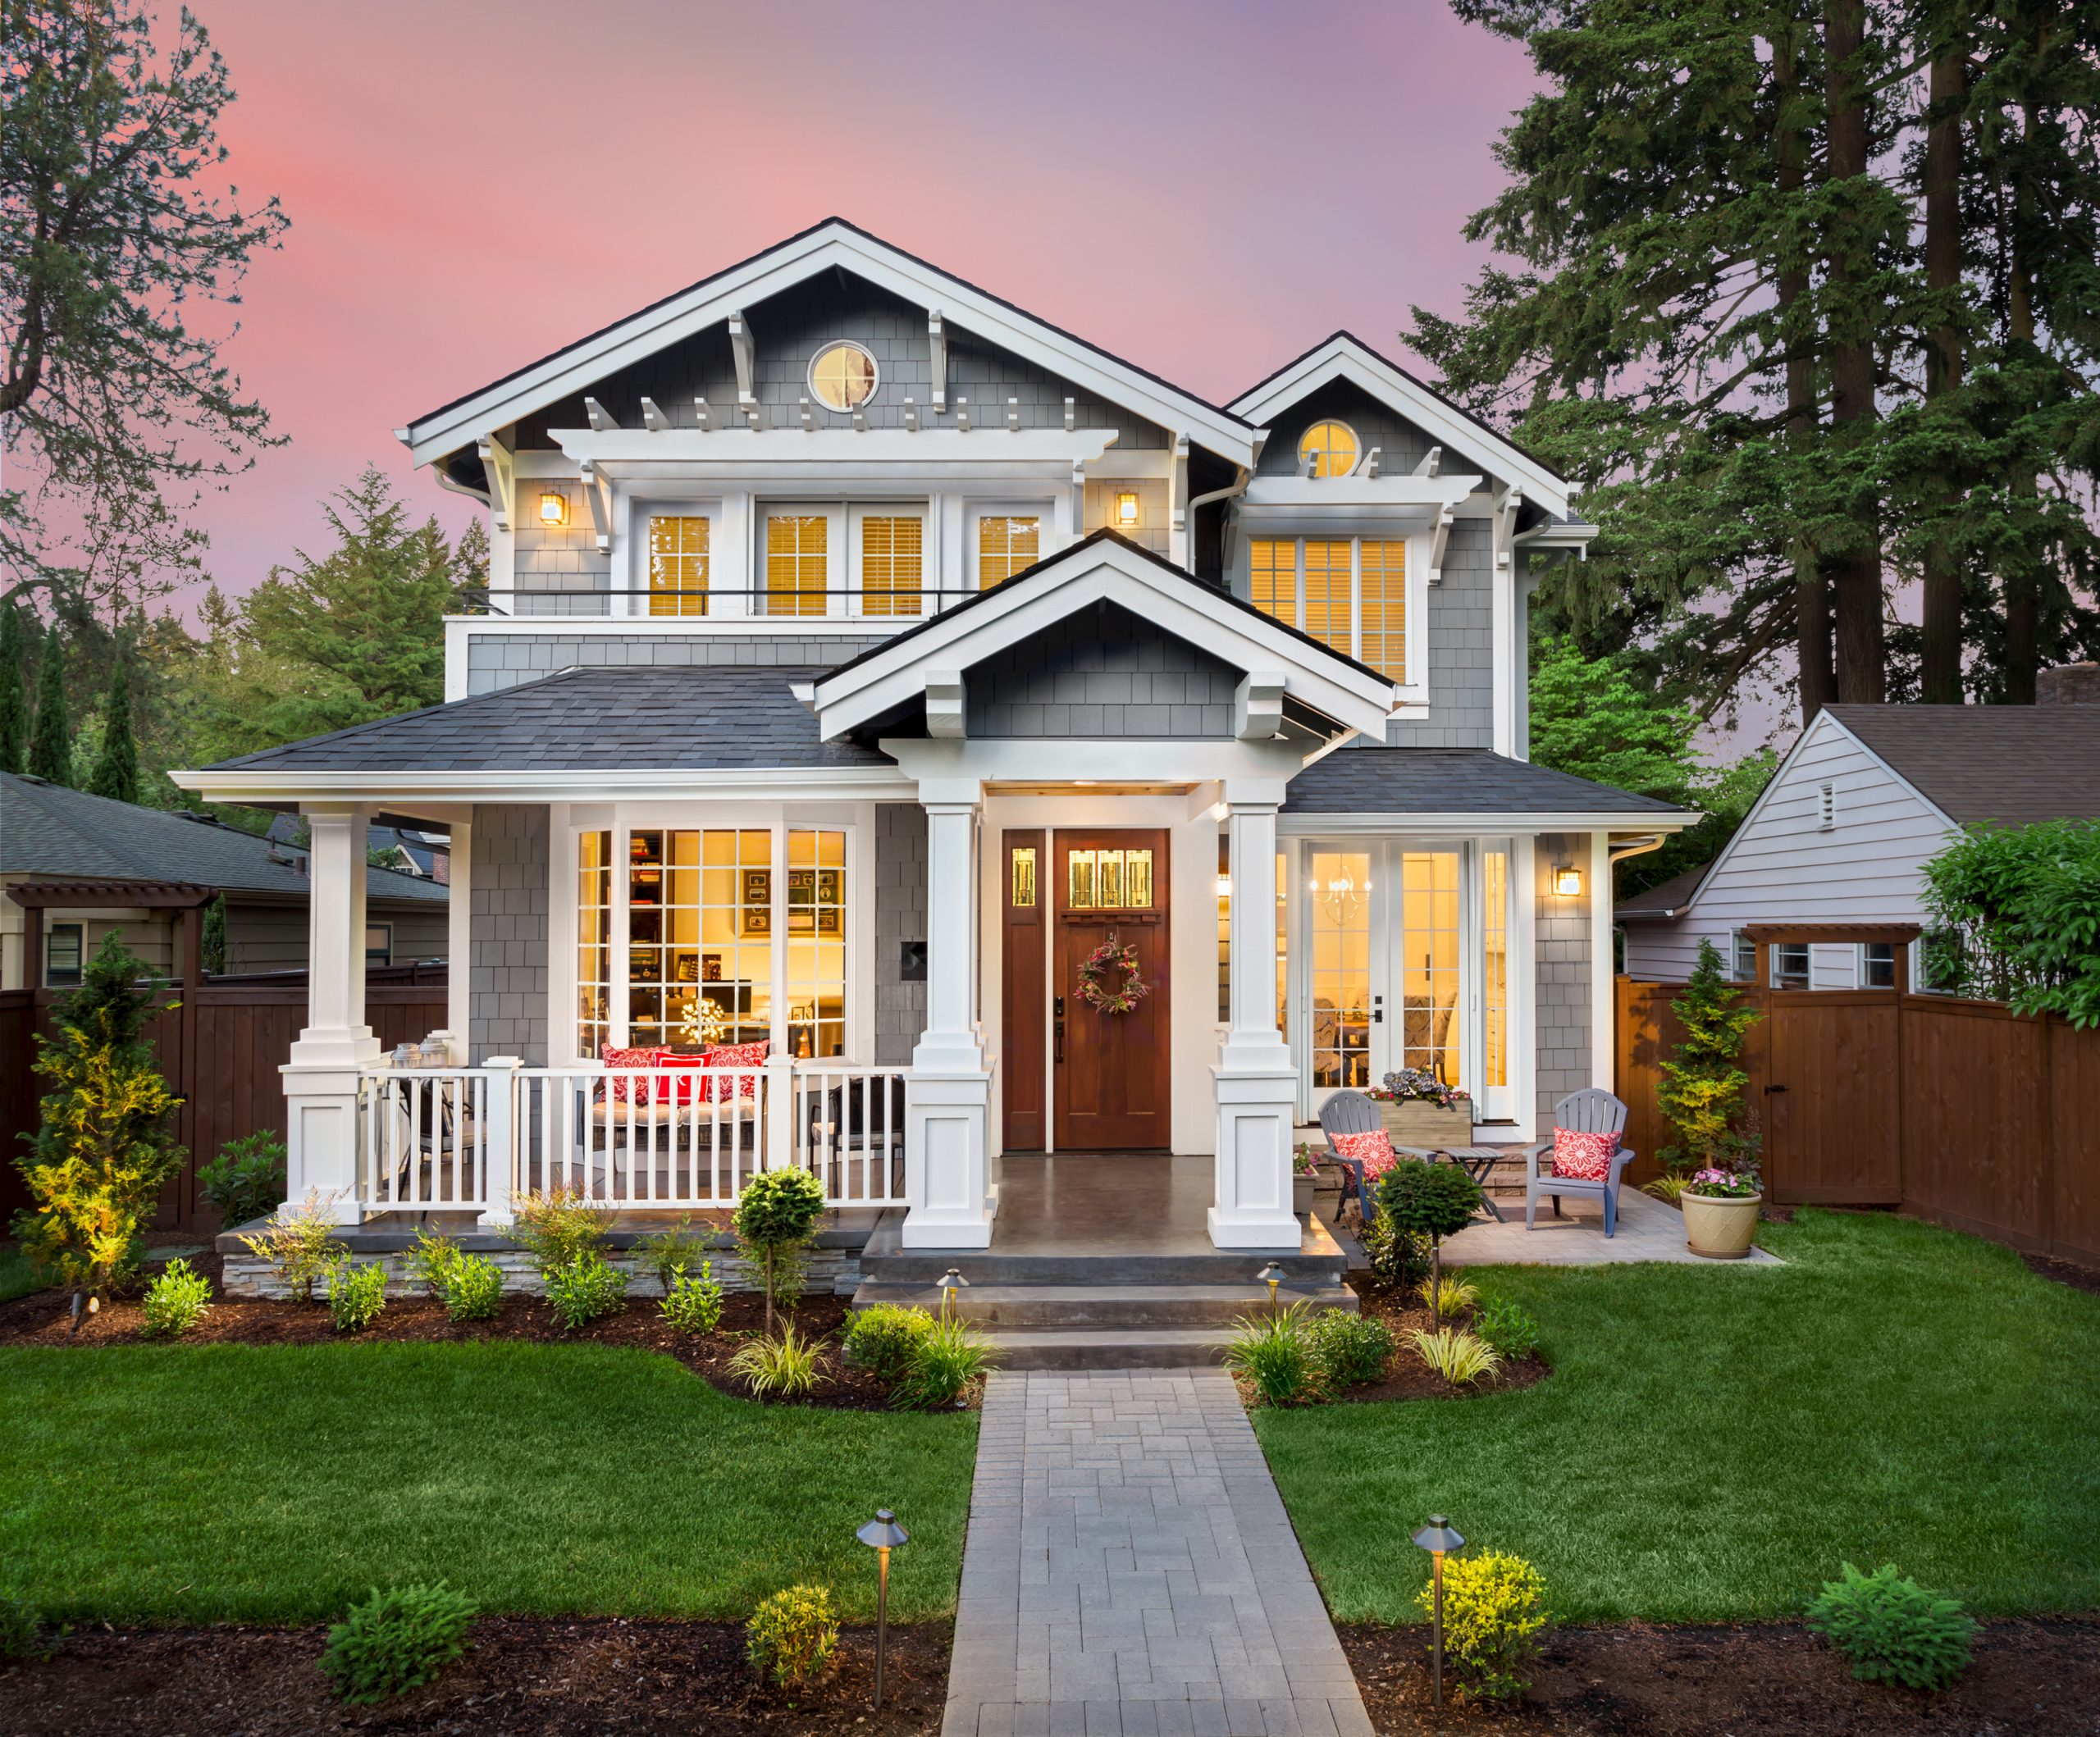 Low Housing Inventory Leads to an Increase in Bidding Wars